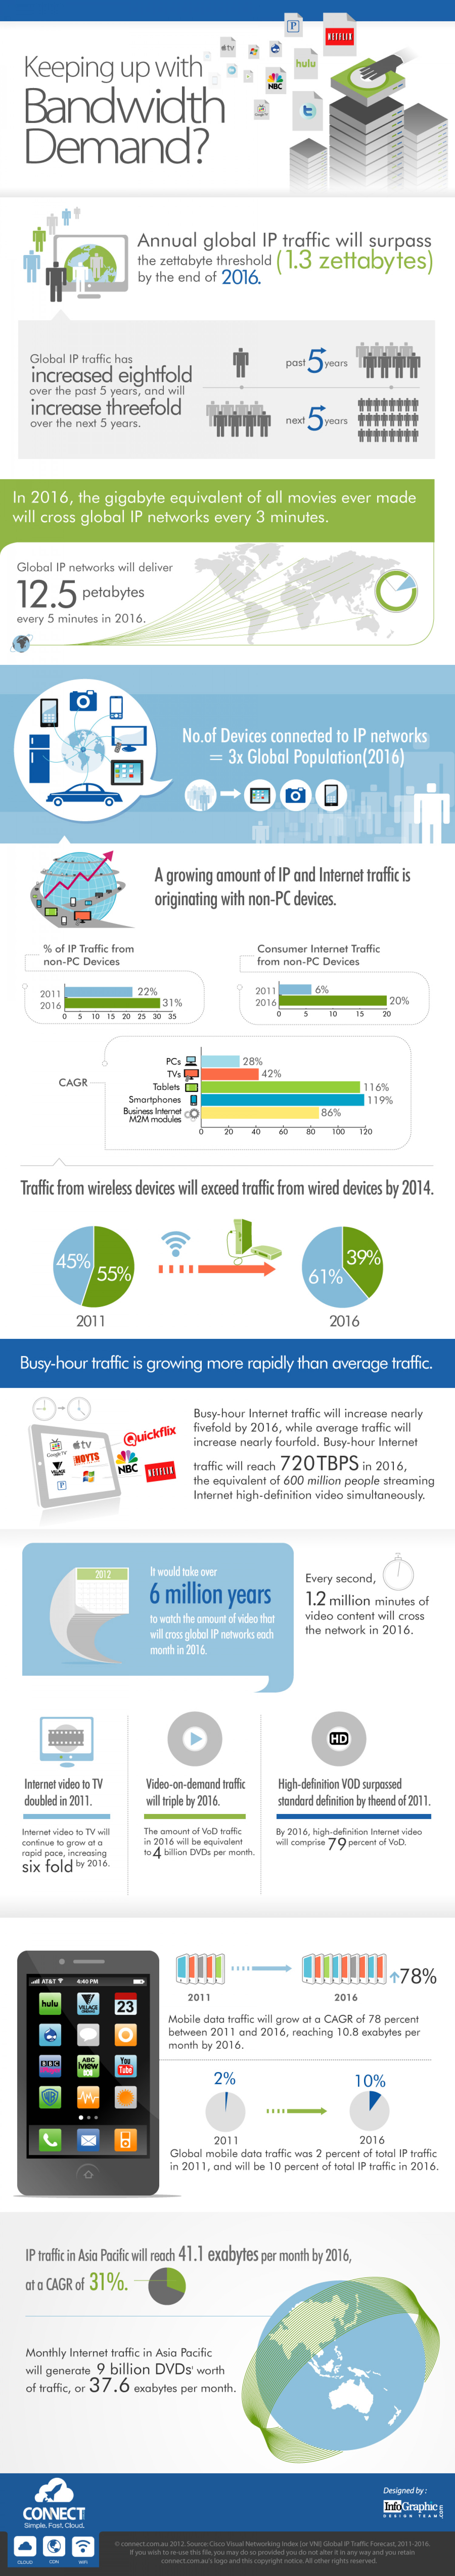 Keeping Up with Bandwidth Demand Infographic